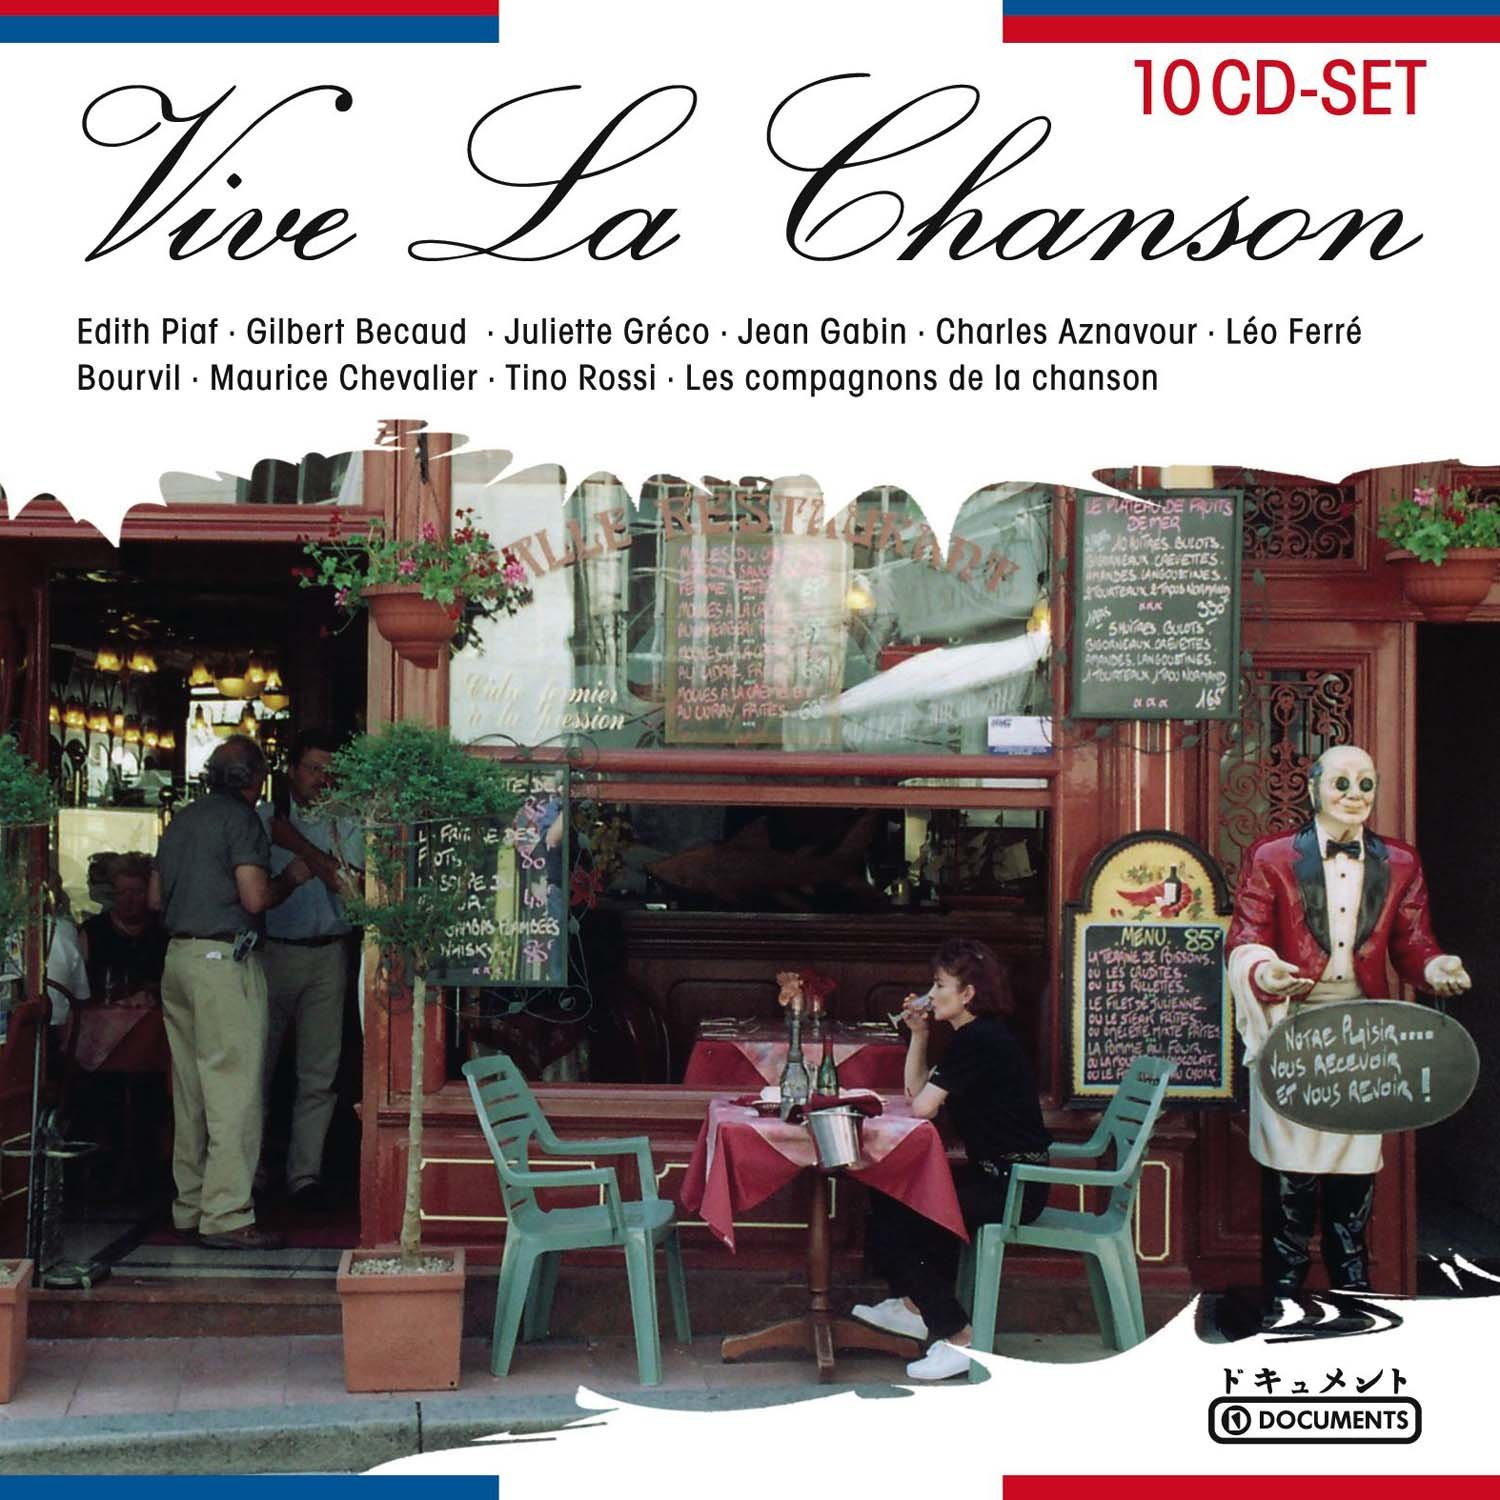 VARIOUS ARTISTS - Chanson 2: Vive La Chanson - Amazon.com Music